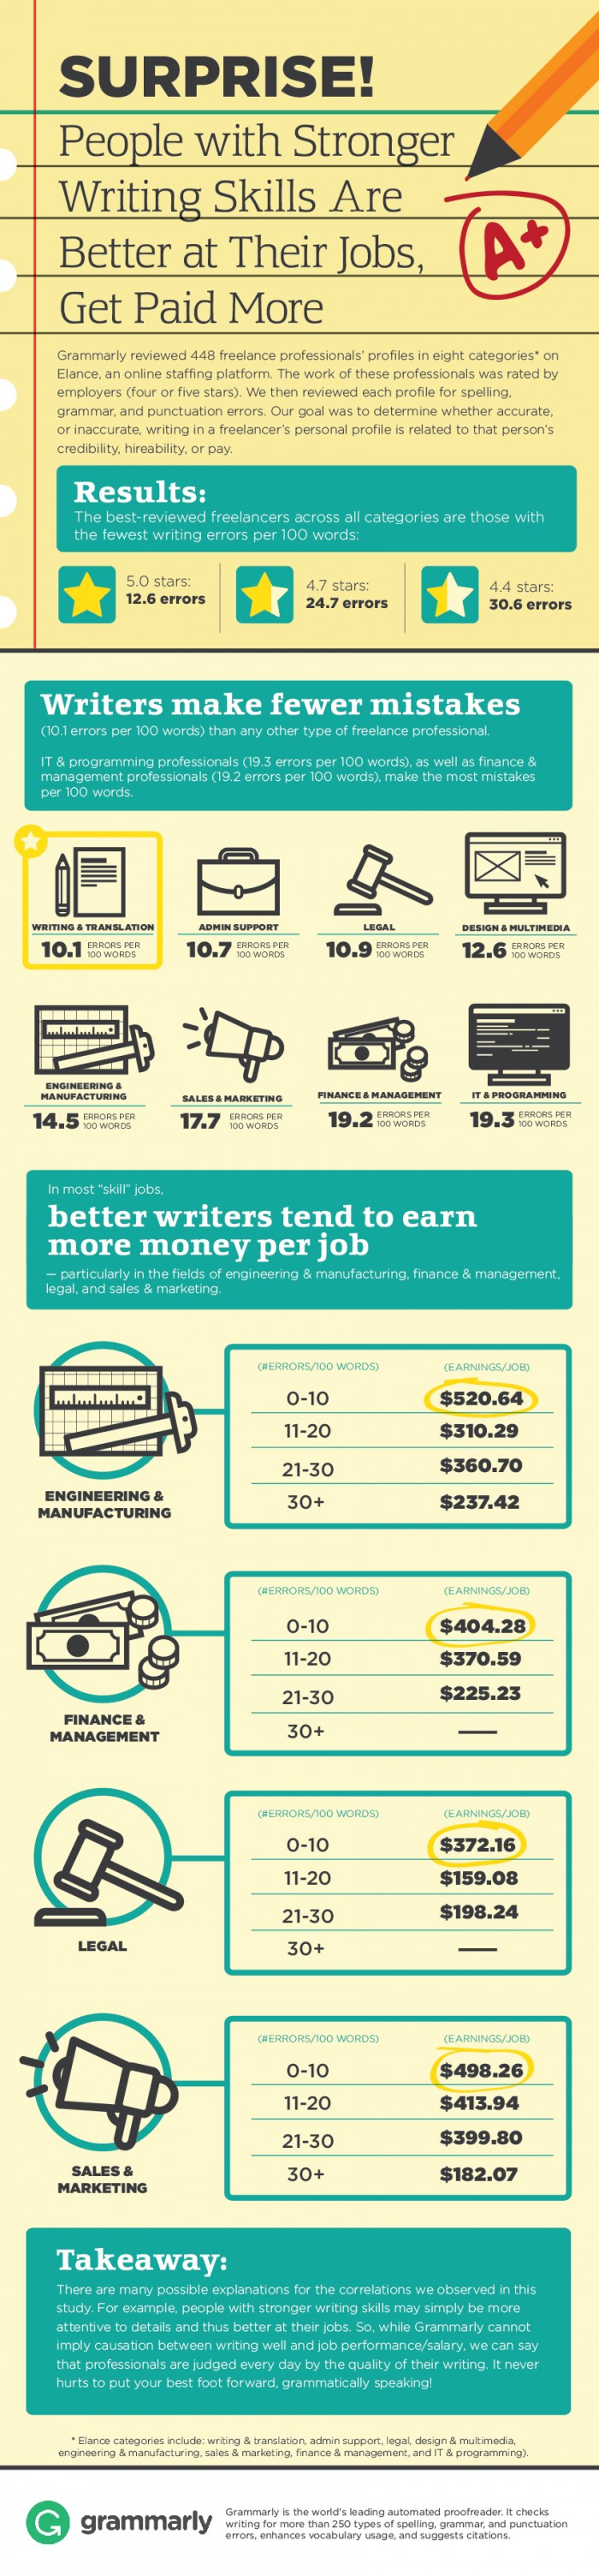 infographic spruce up your writing skills to make more money readers have you found that you had to work on your writing skills in order to qualify for better paying jobs let us know about your experiences in the